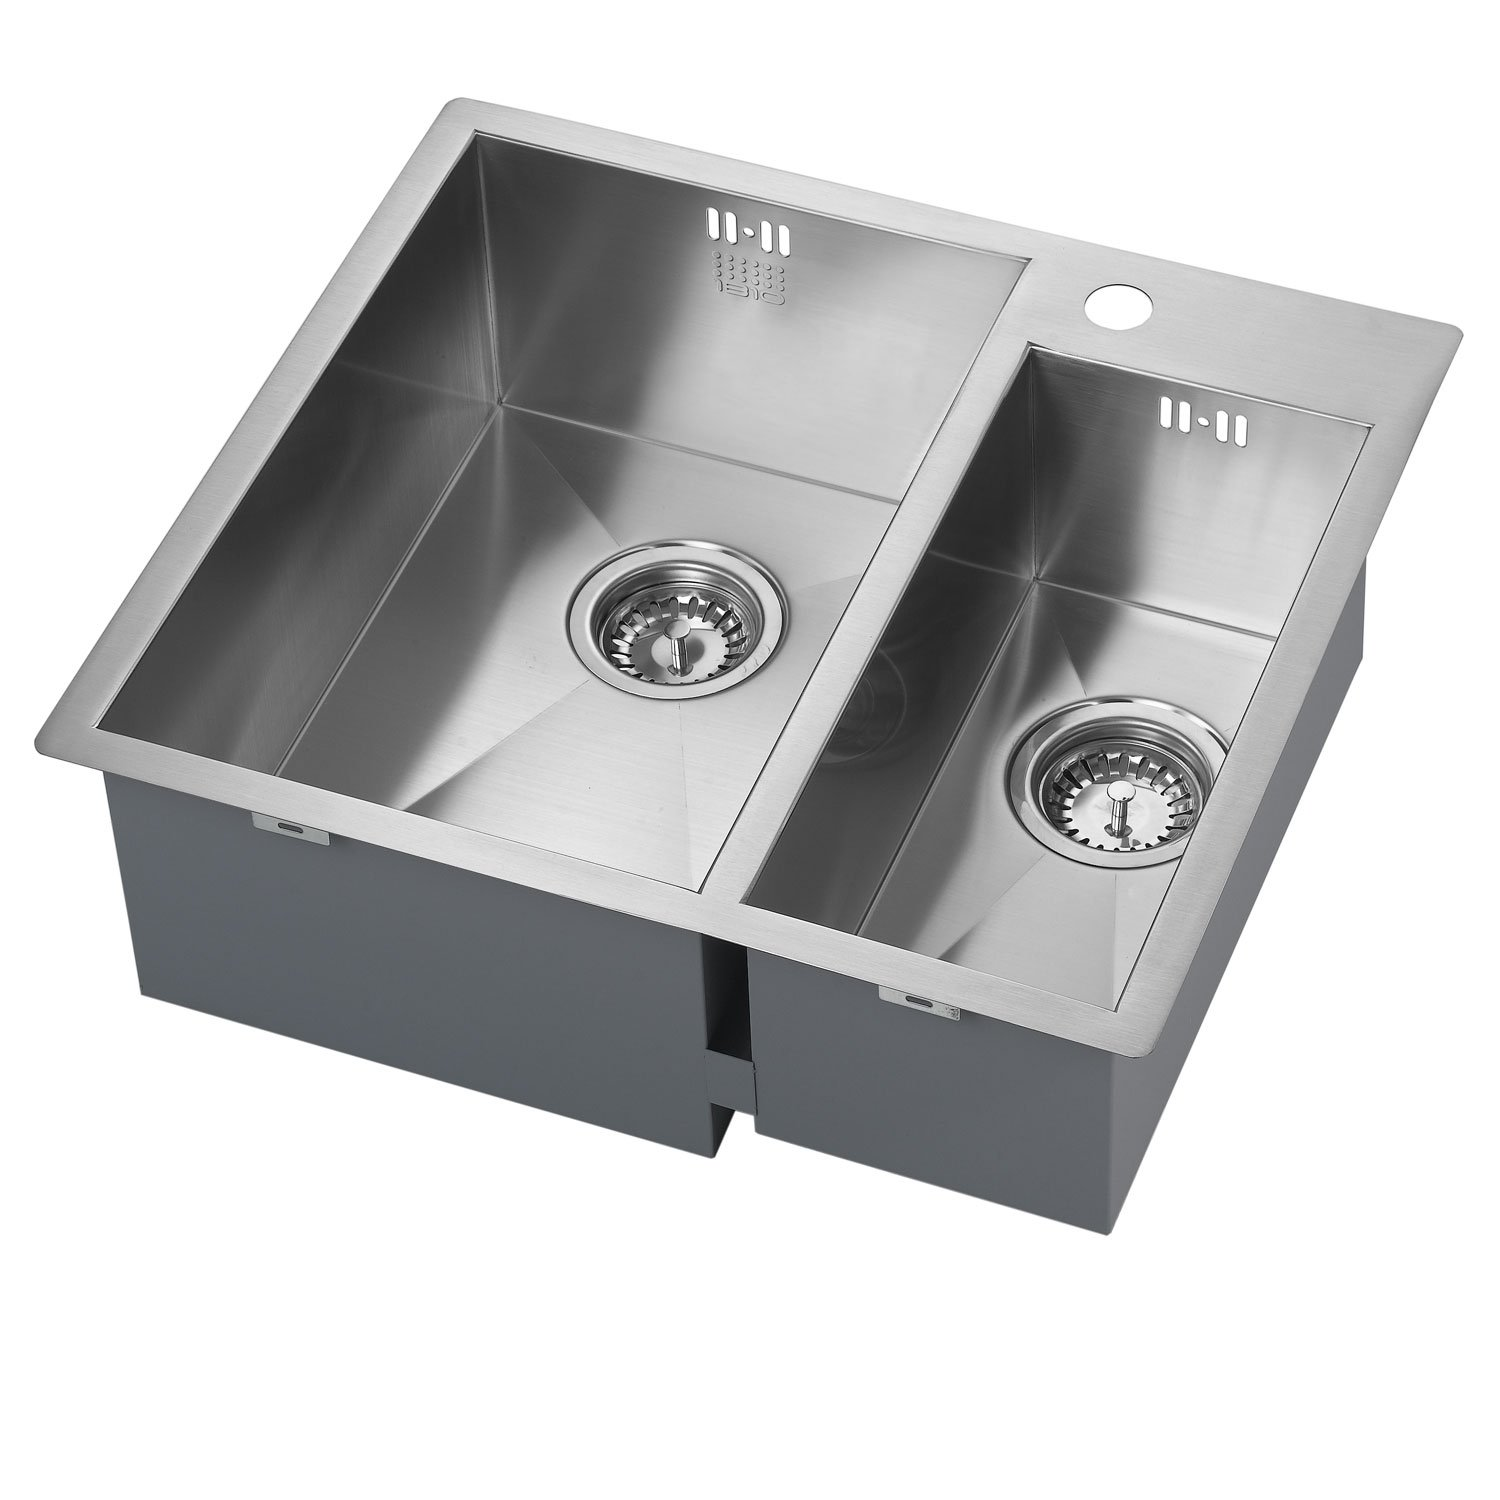 The 1810 Company Zenduo 310/180 I-F 1.5 Bowl Kitchen Sink - Left Hand-0